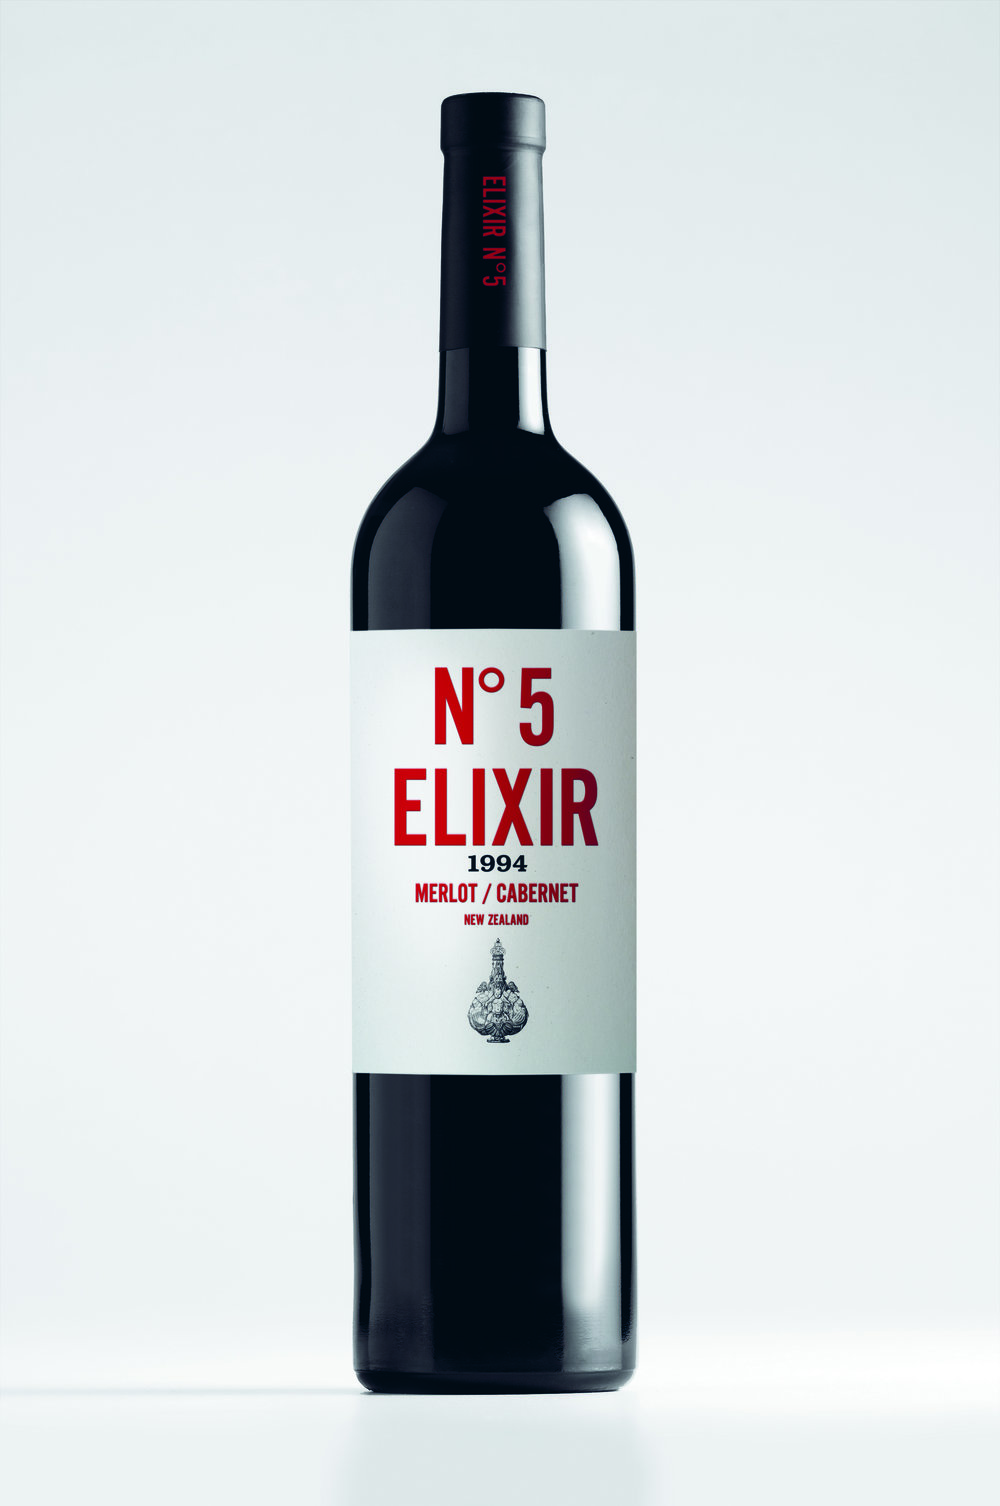 <b>Elixir Wine</b><br>Creating a unique and provocative identity for New Zealand's fine wines